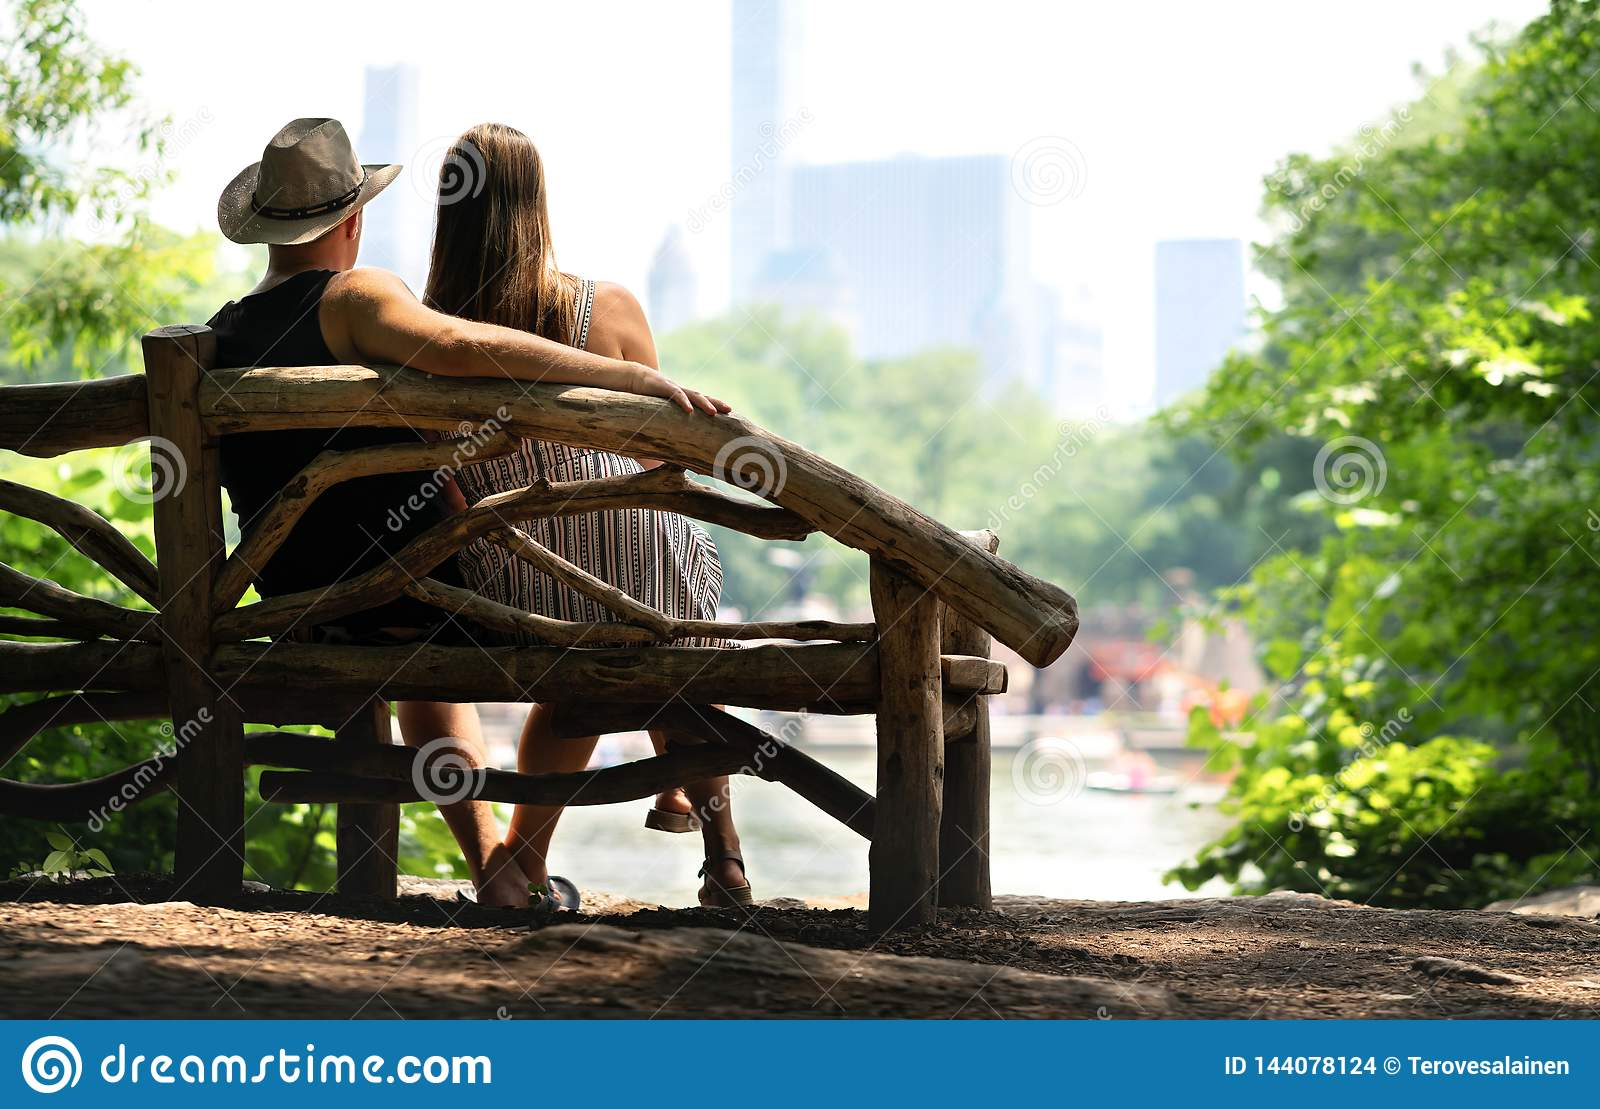 Couple sitting on a park bench and having a romantic first date. Lovers with romance and trust.